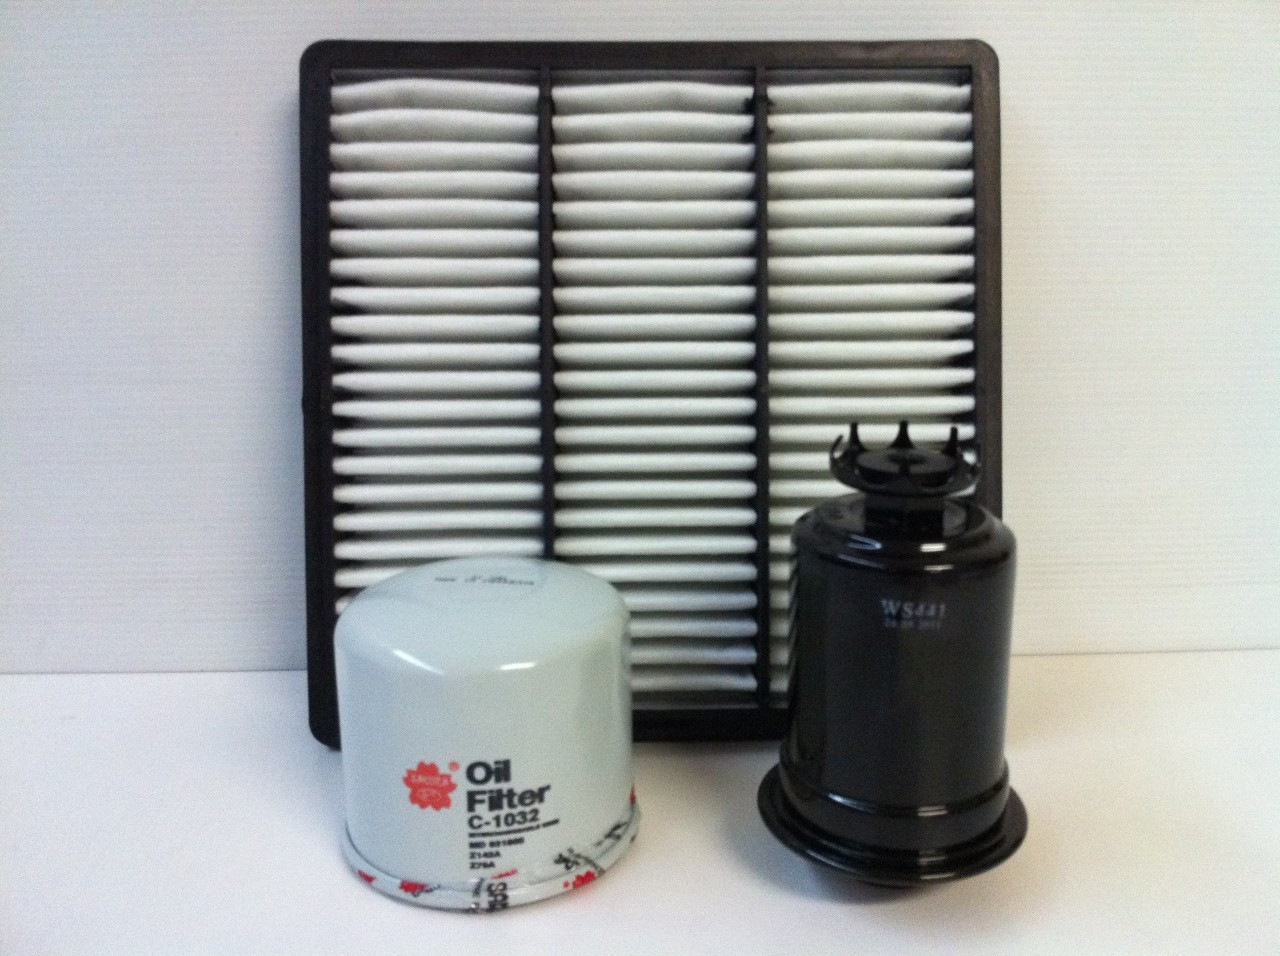 Mitsubishi Pajero Nj Nk 30l V6 Air Oil Fuel Filter Kit Sydney Filters 2008 Jeep Wrangler Image 1